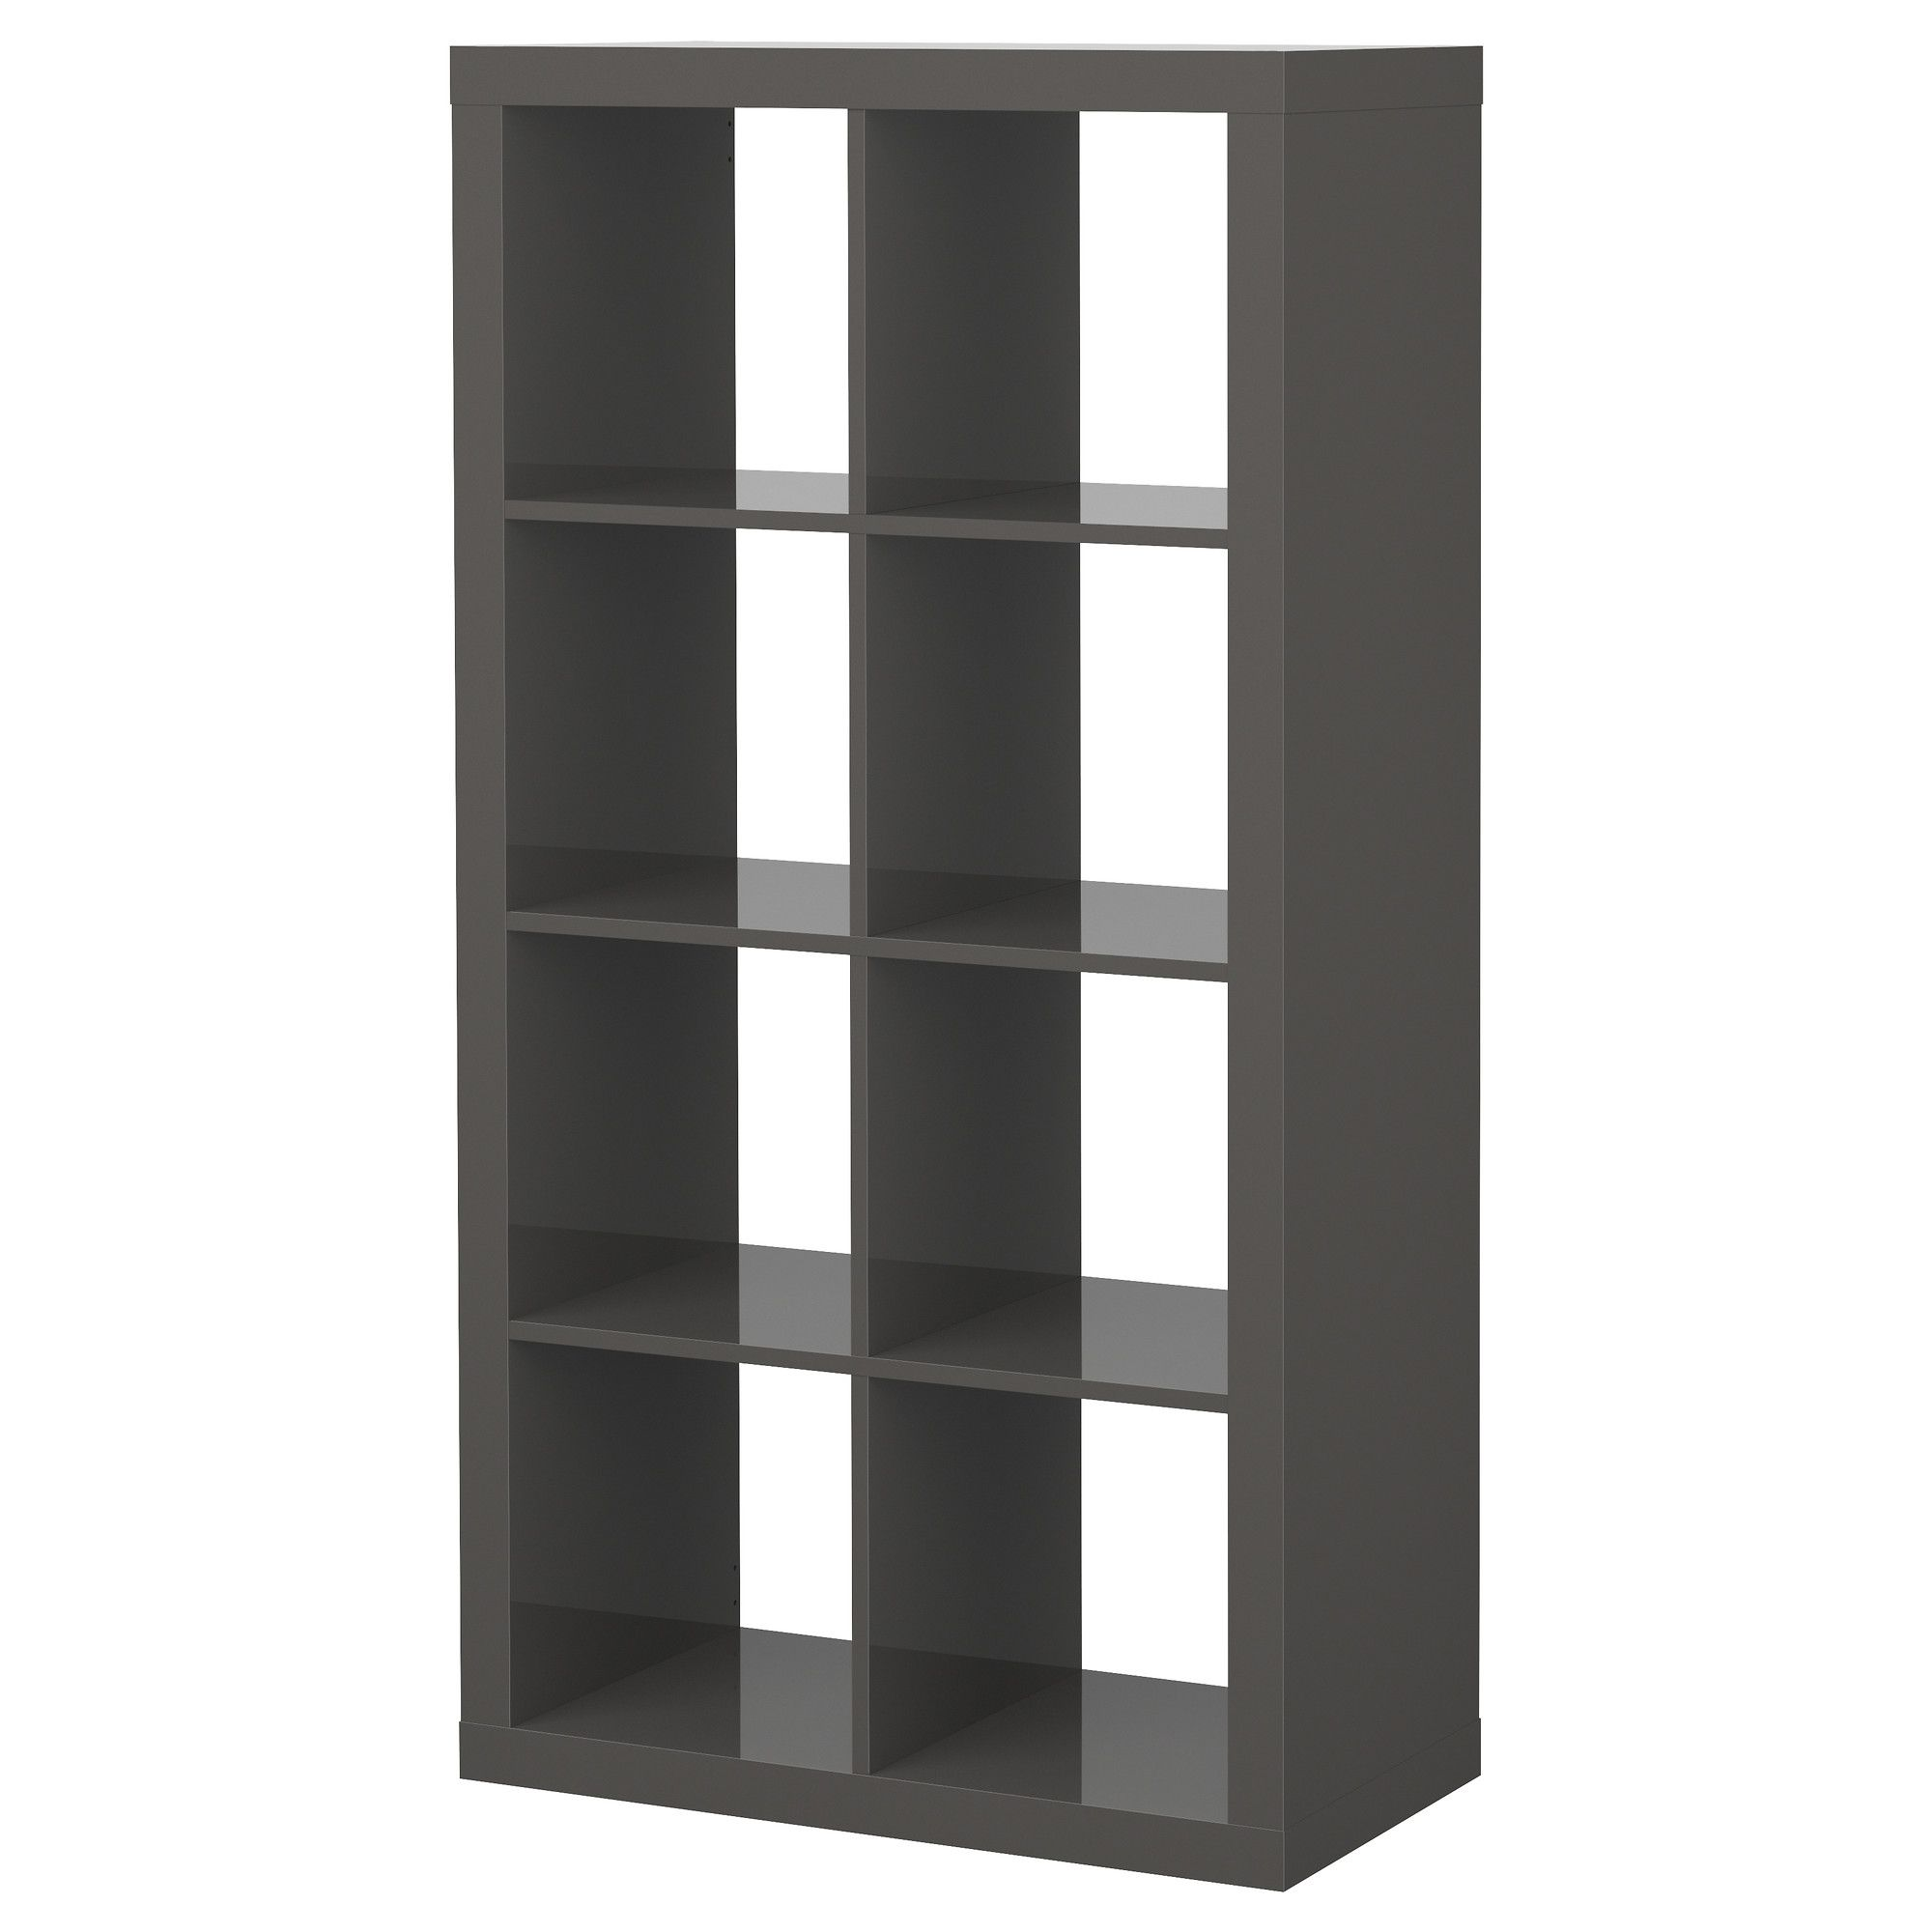 EXPEDIT Shelving unit   high gloss grey   IKEA   Ikea Bedroom StorageIkea. EXPEDIT Shelving unit   high gloss grey   IKEA   Storage Units